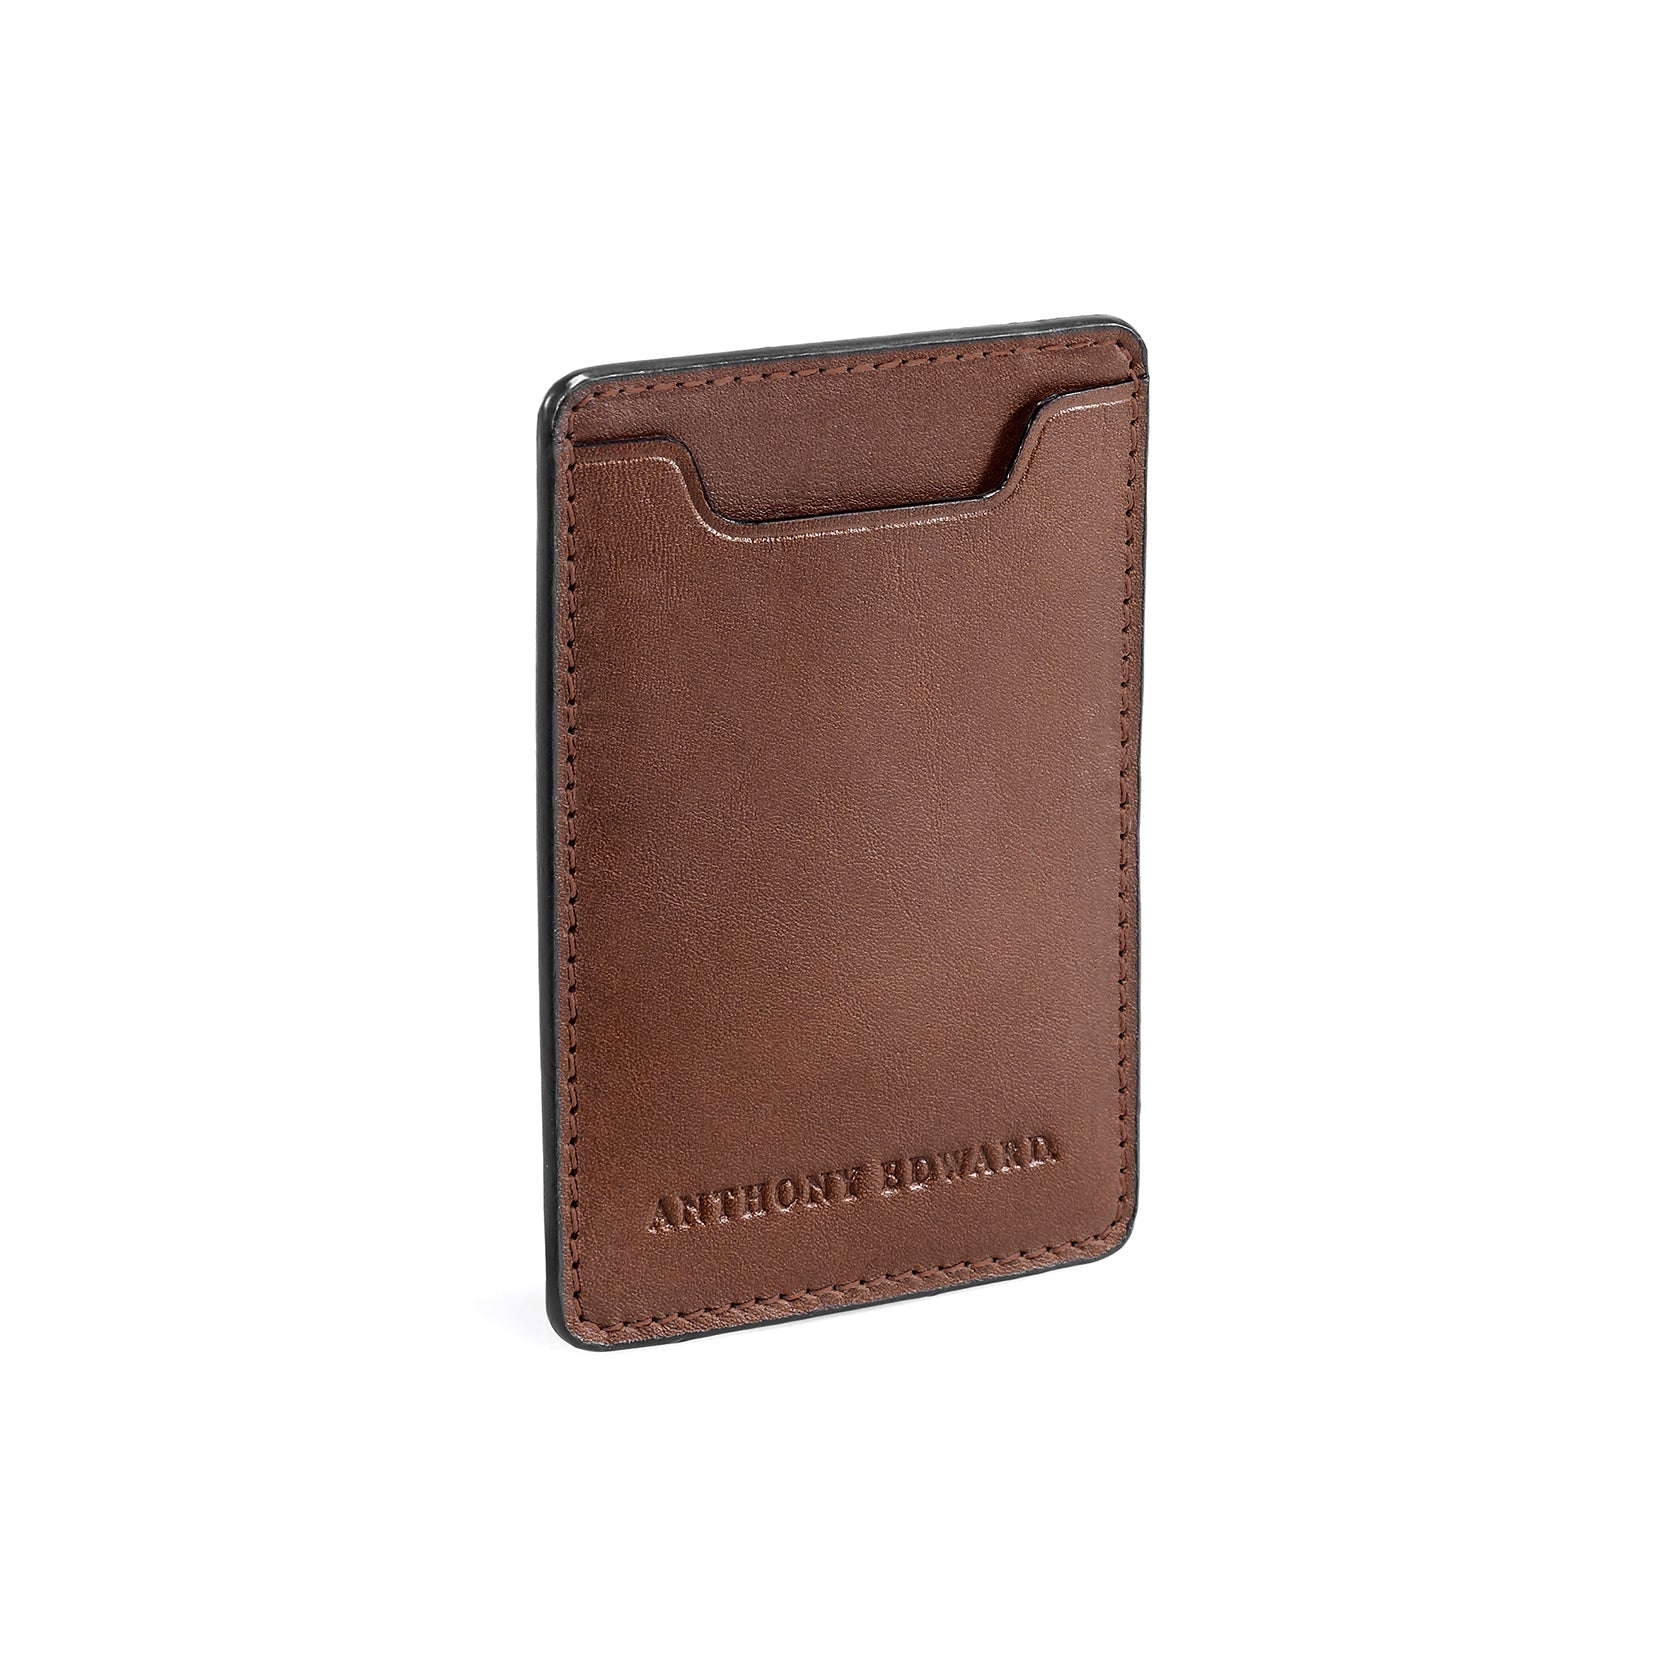 CARD CASE BROWN (520959197233)